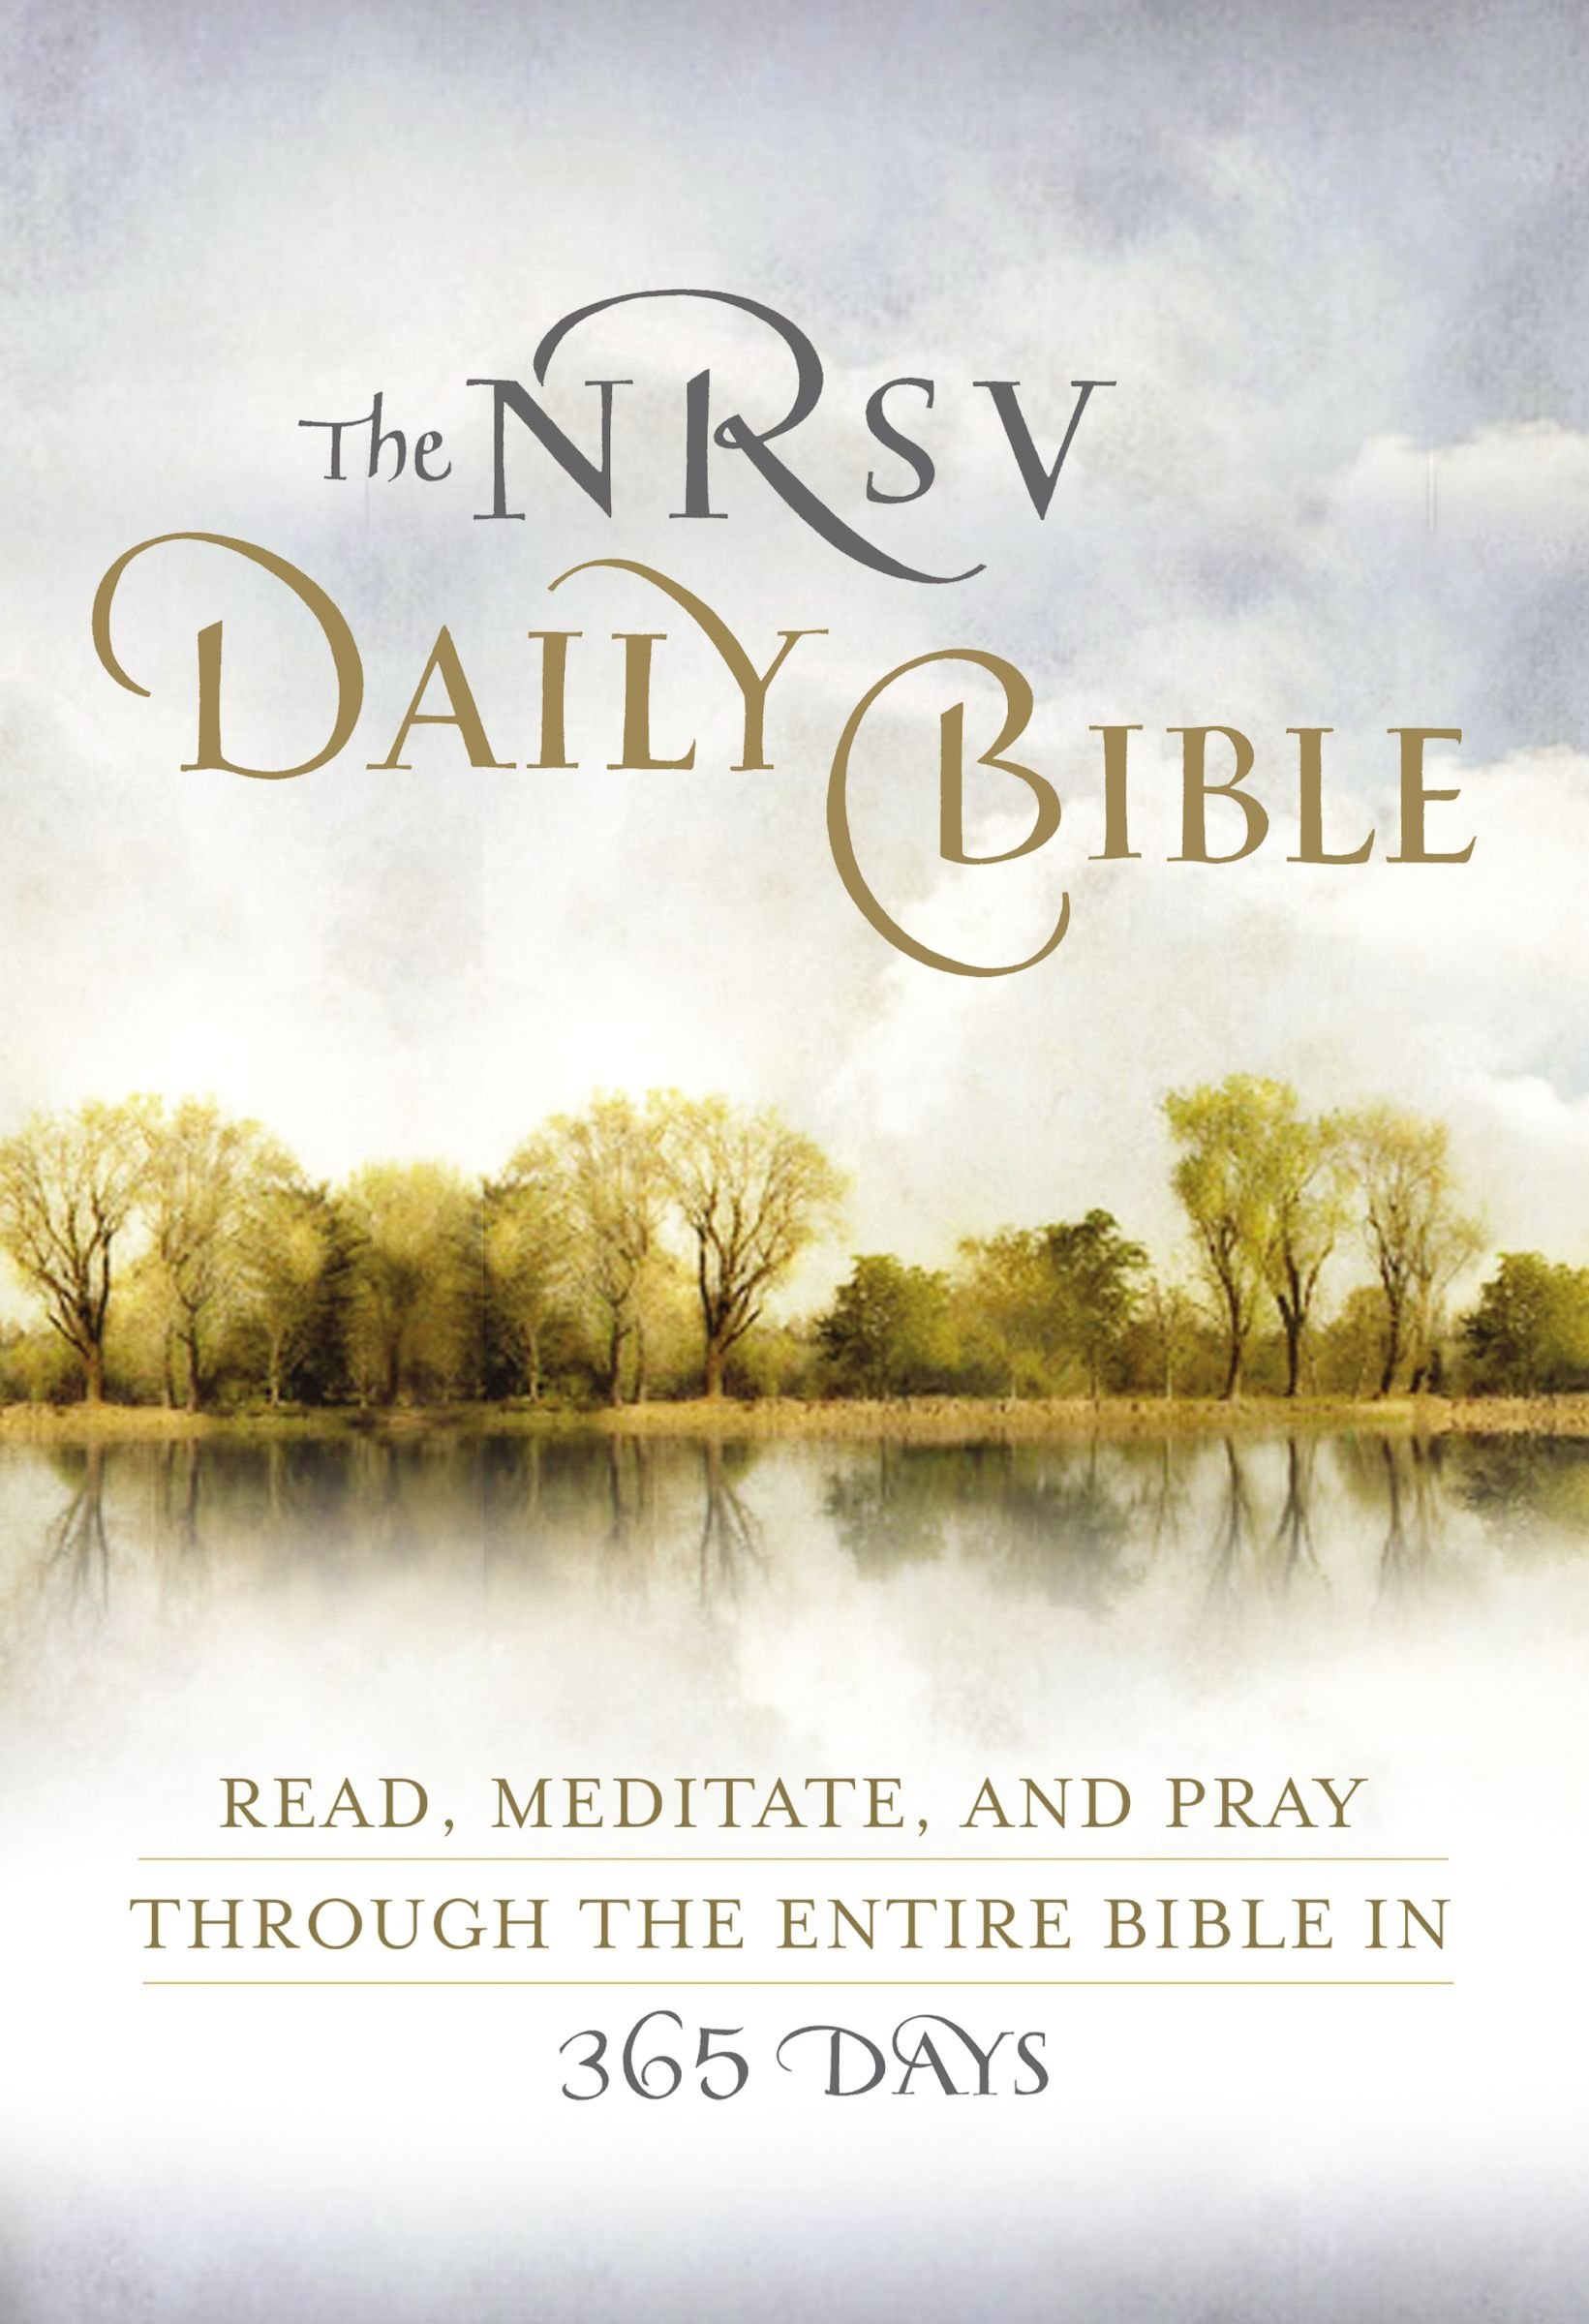 The NRSV Daily Bible: Read, Meditate, and Pray Through the